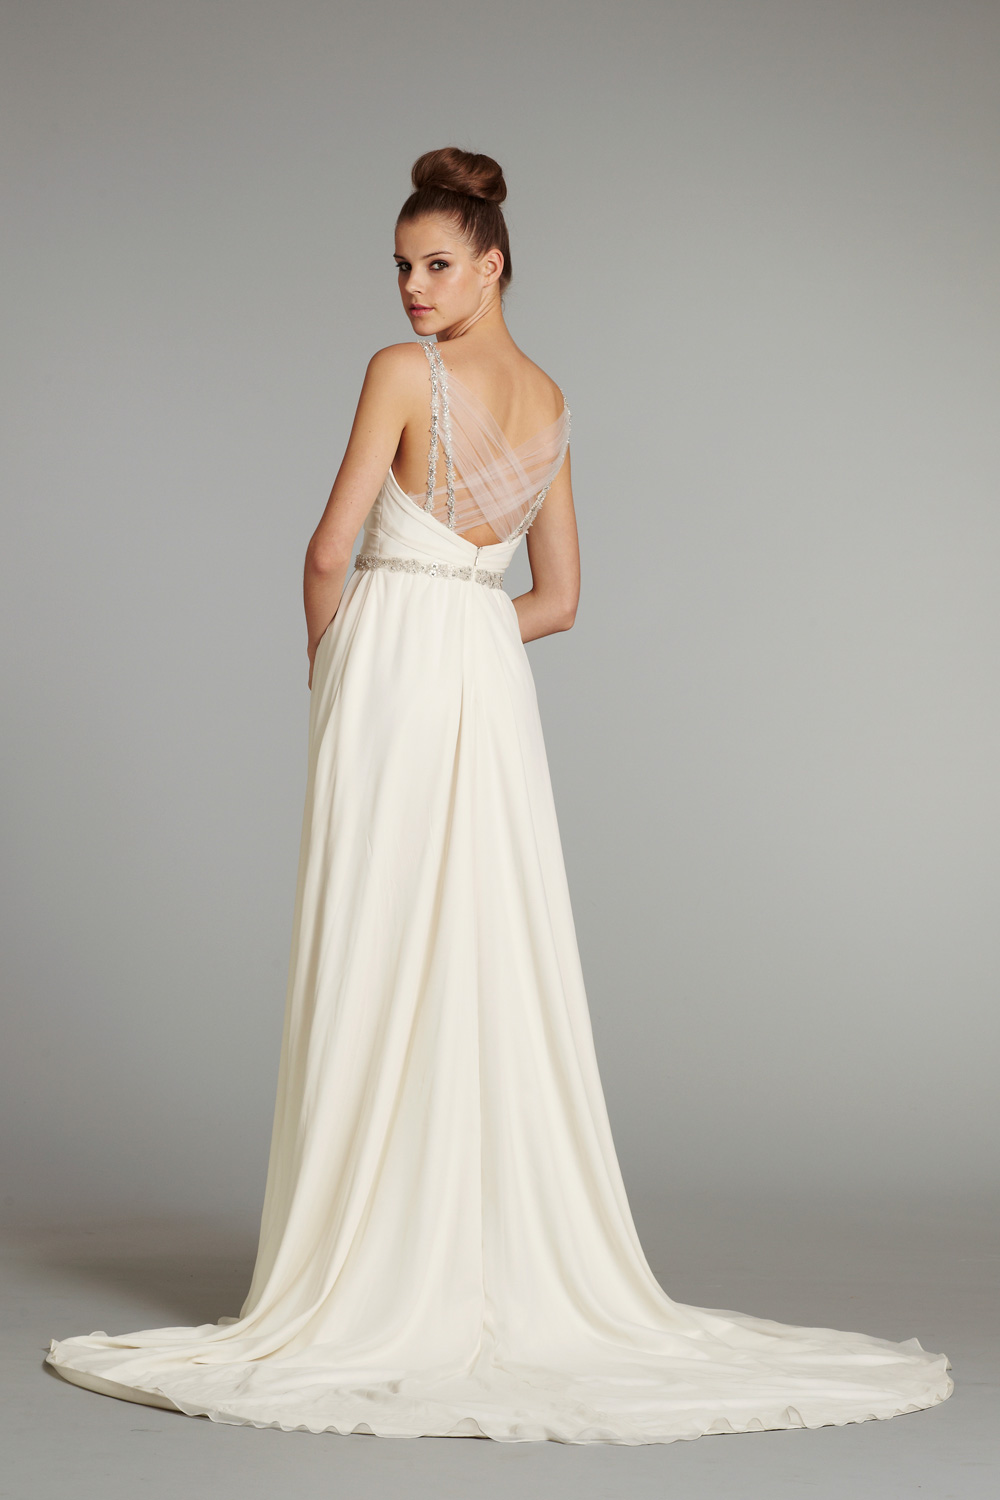 New-bridal-gowns-fall-2012-wedding-dress-hayley-paige-for-jlm-couture-nina-b.original